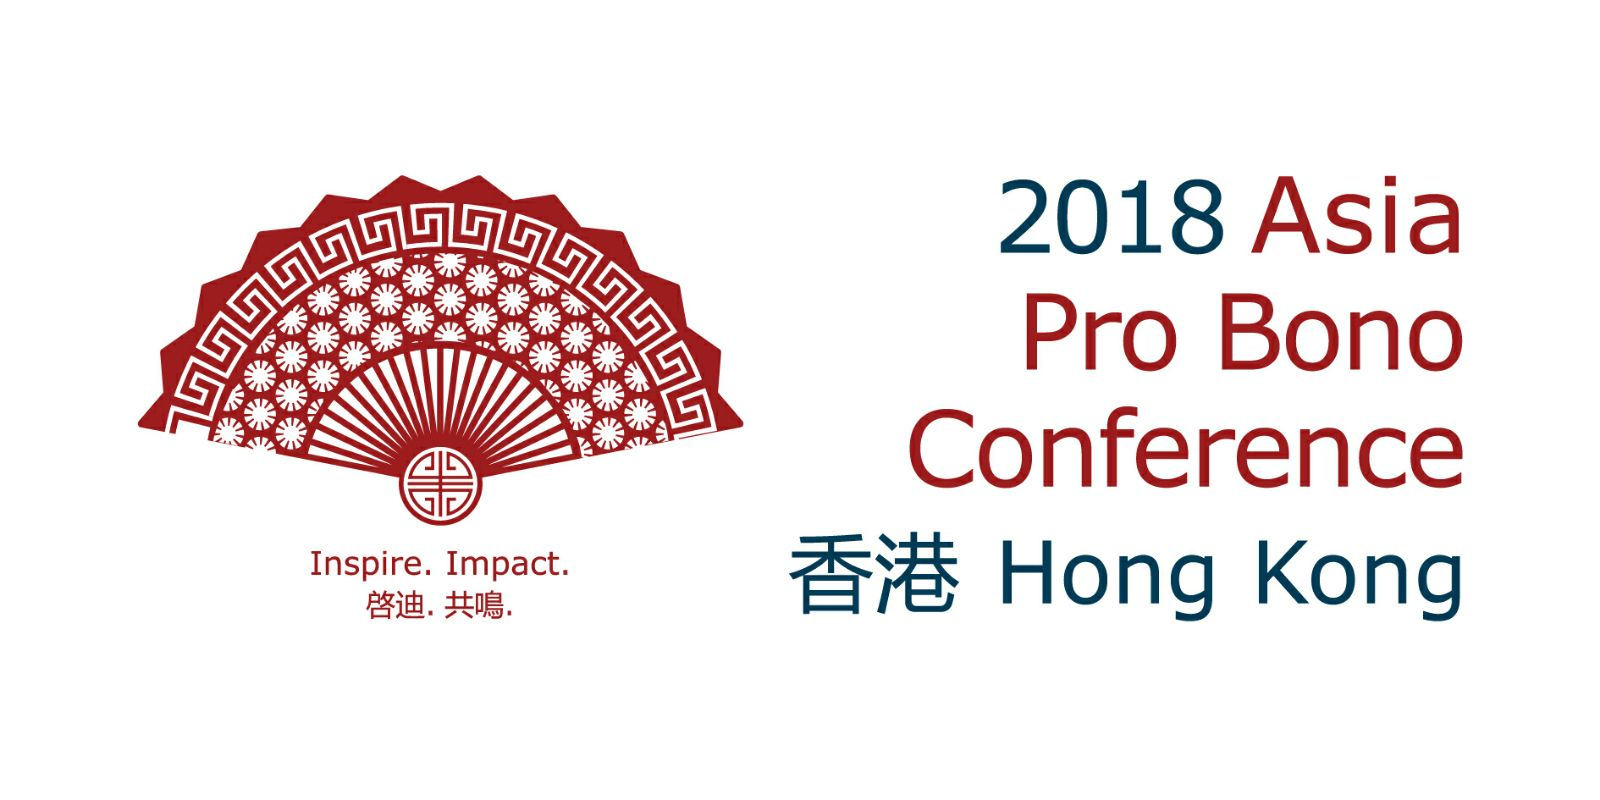 This year's Asia Pro Bono Conference will be held in Hong Kong from 25th - 27th October 2018